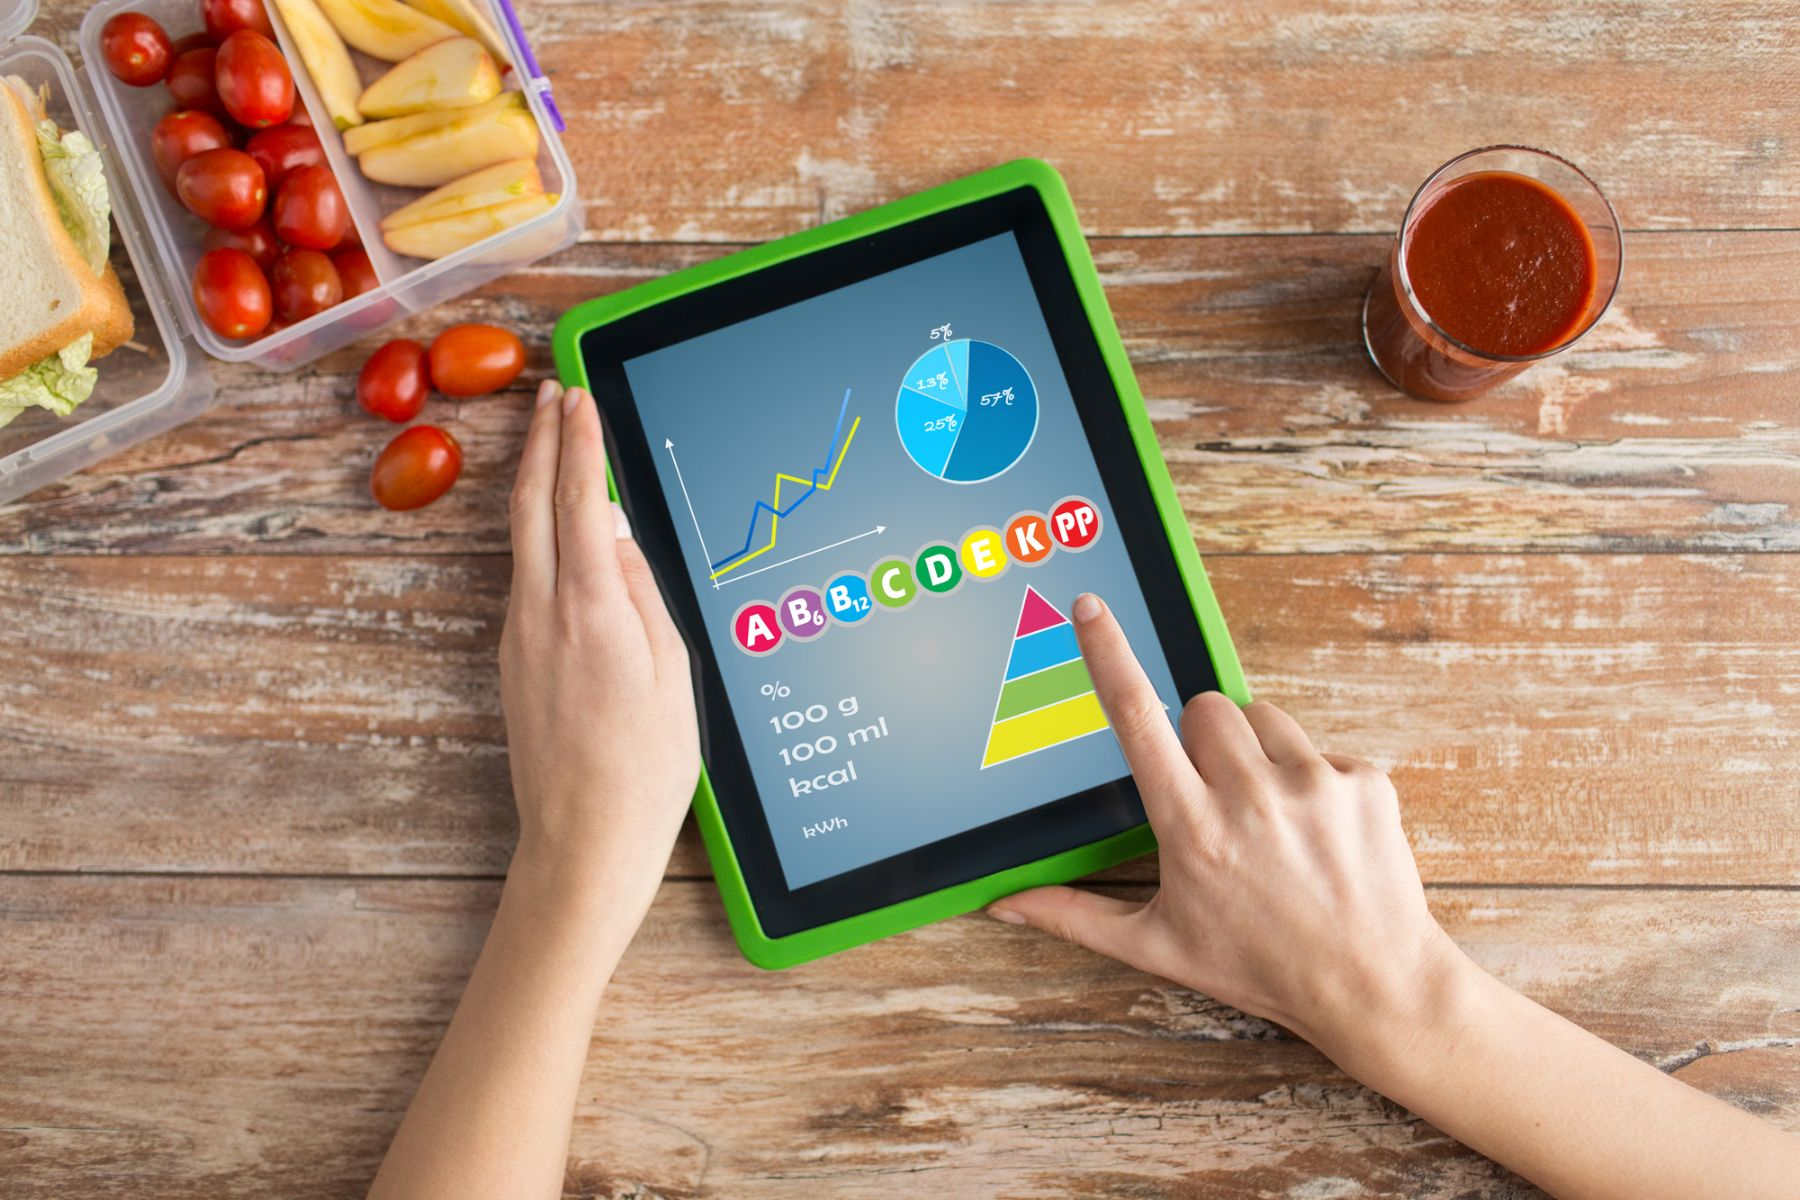 Reading about a food health app on tablet